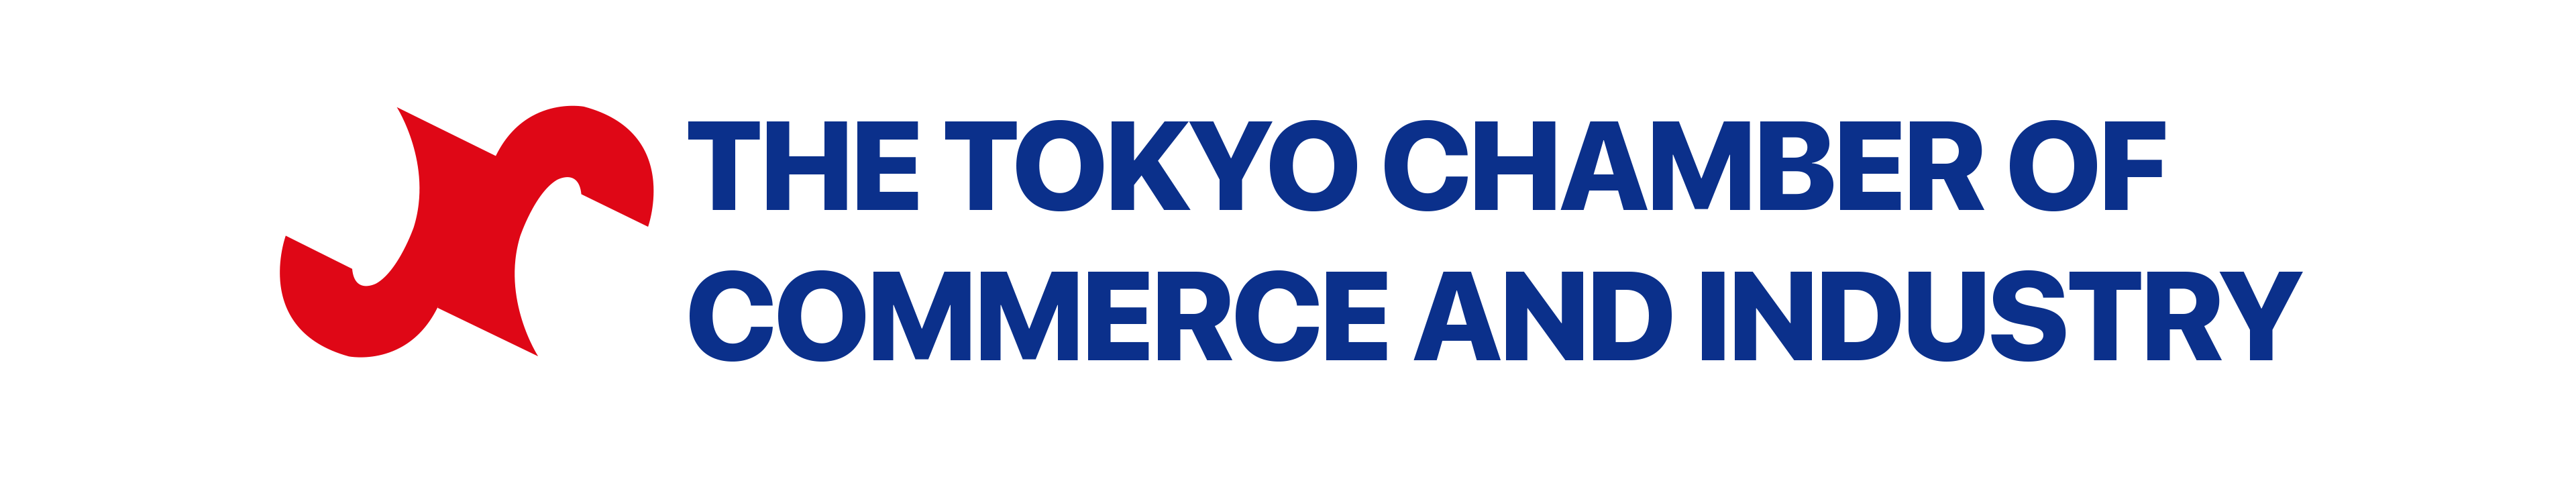 The Tokyo Chamber of Commerce and Industry (TCCI)